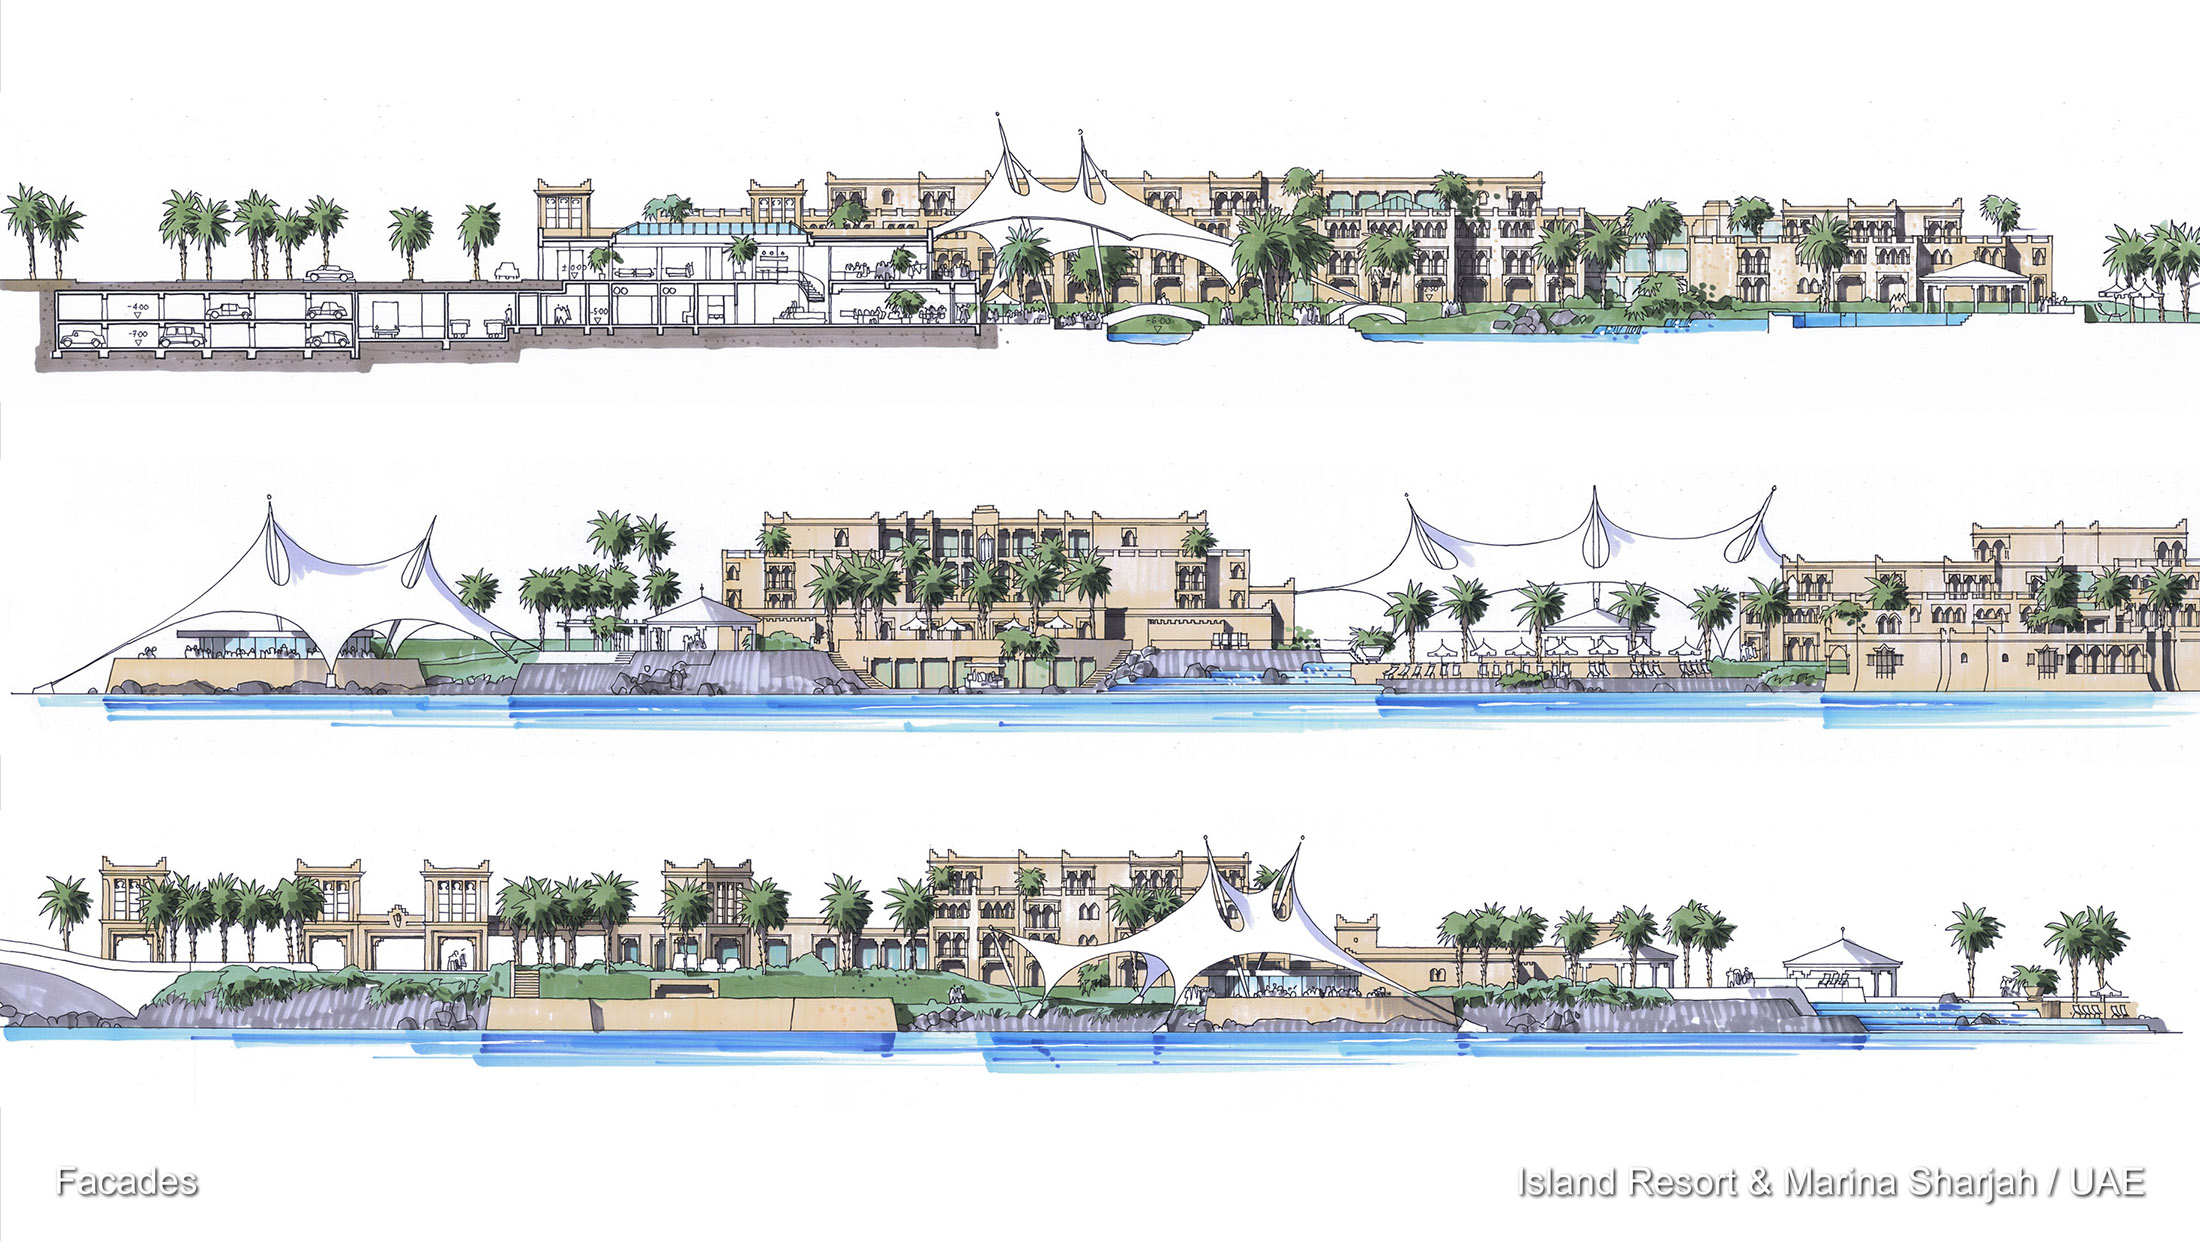 20_Island Resort Sharjah 2